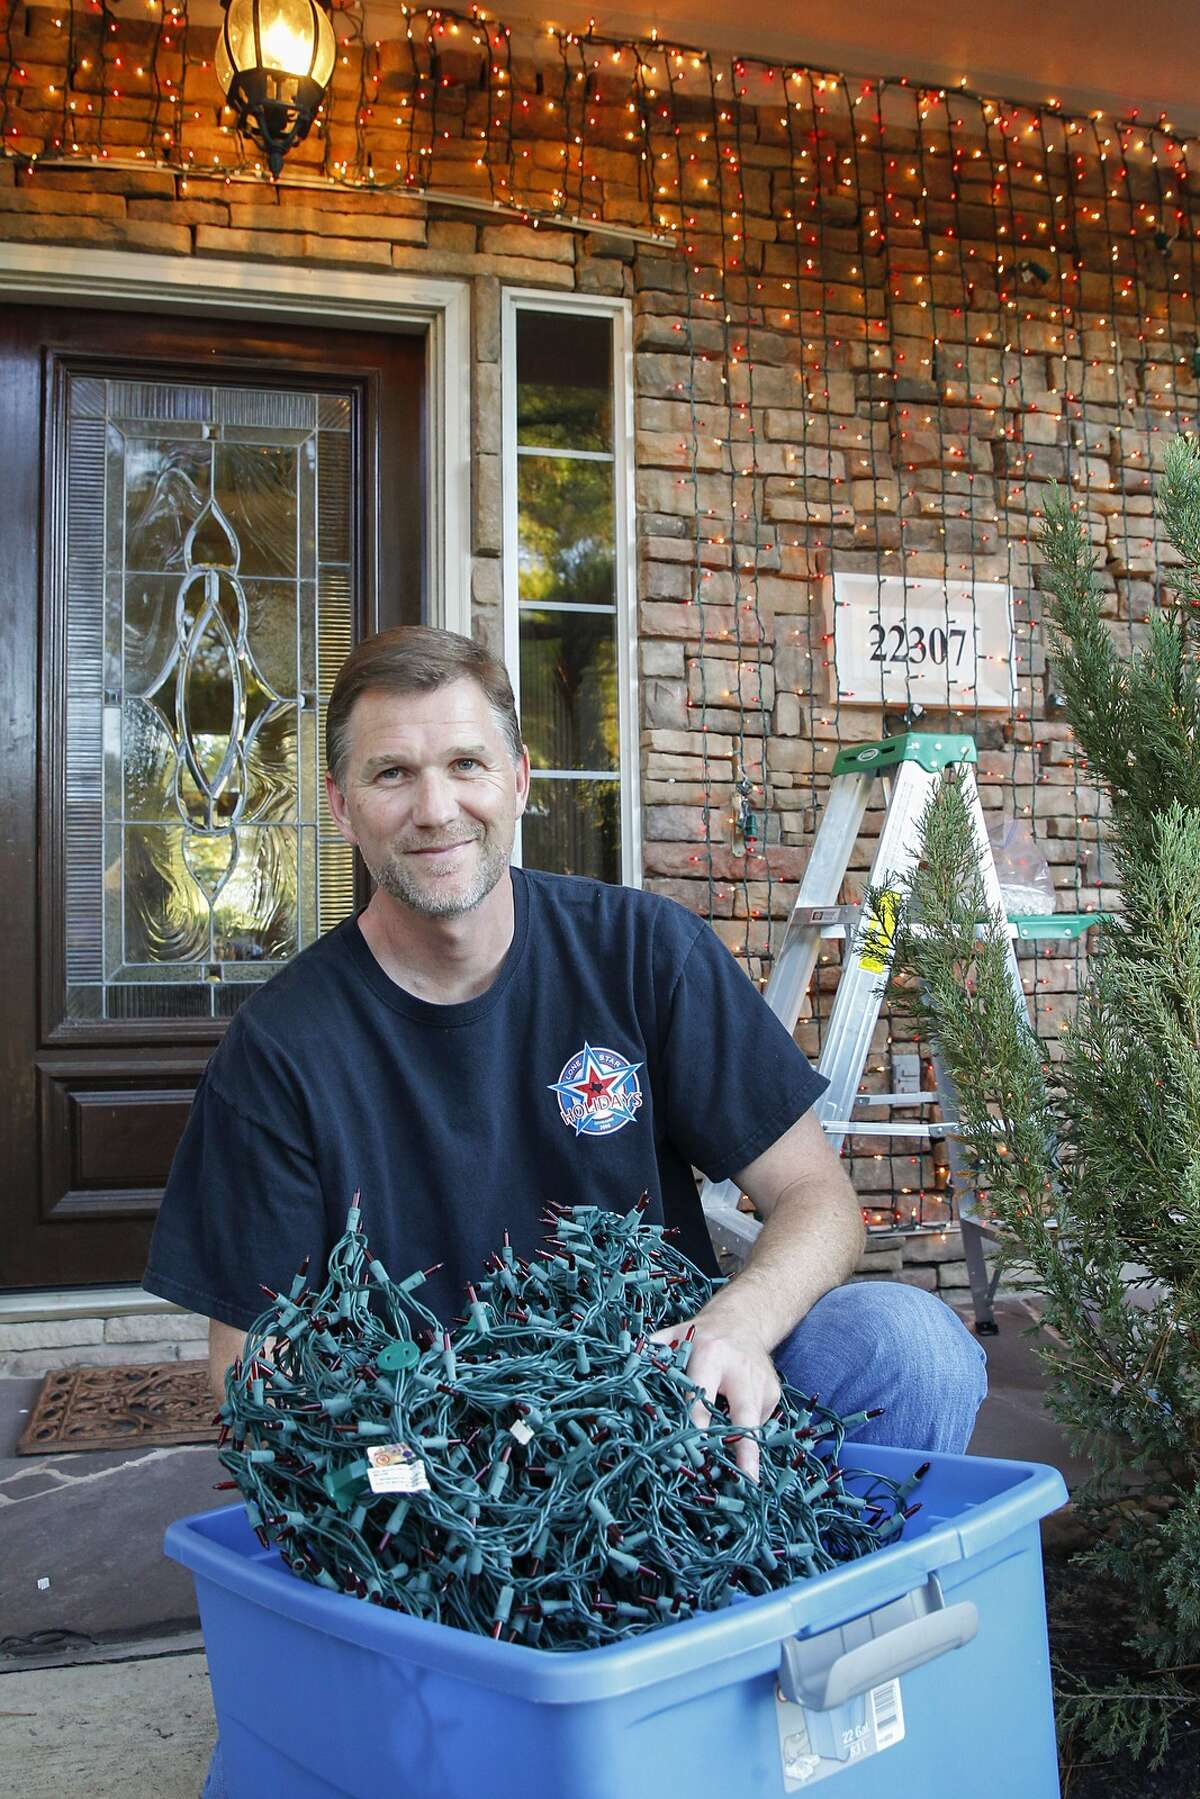 Greg Hoover of Cinco Ranch spends weeks decorating his house for the holidays.Greg Hoover of Cinco Ranch spends weeks decorating his house for the holidays.